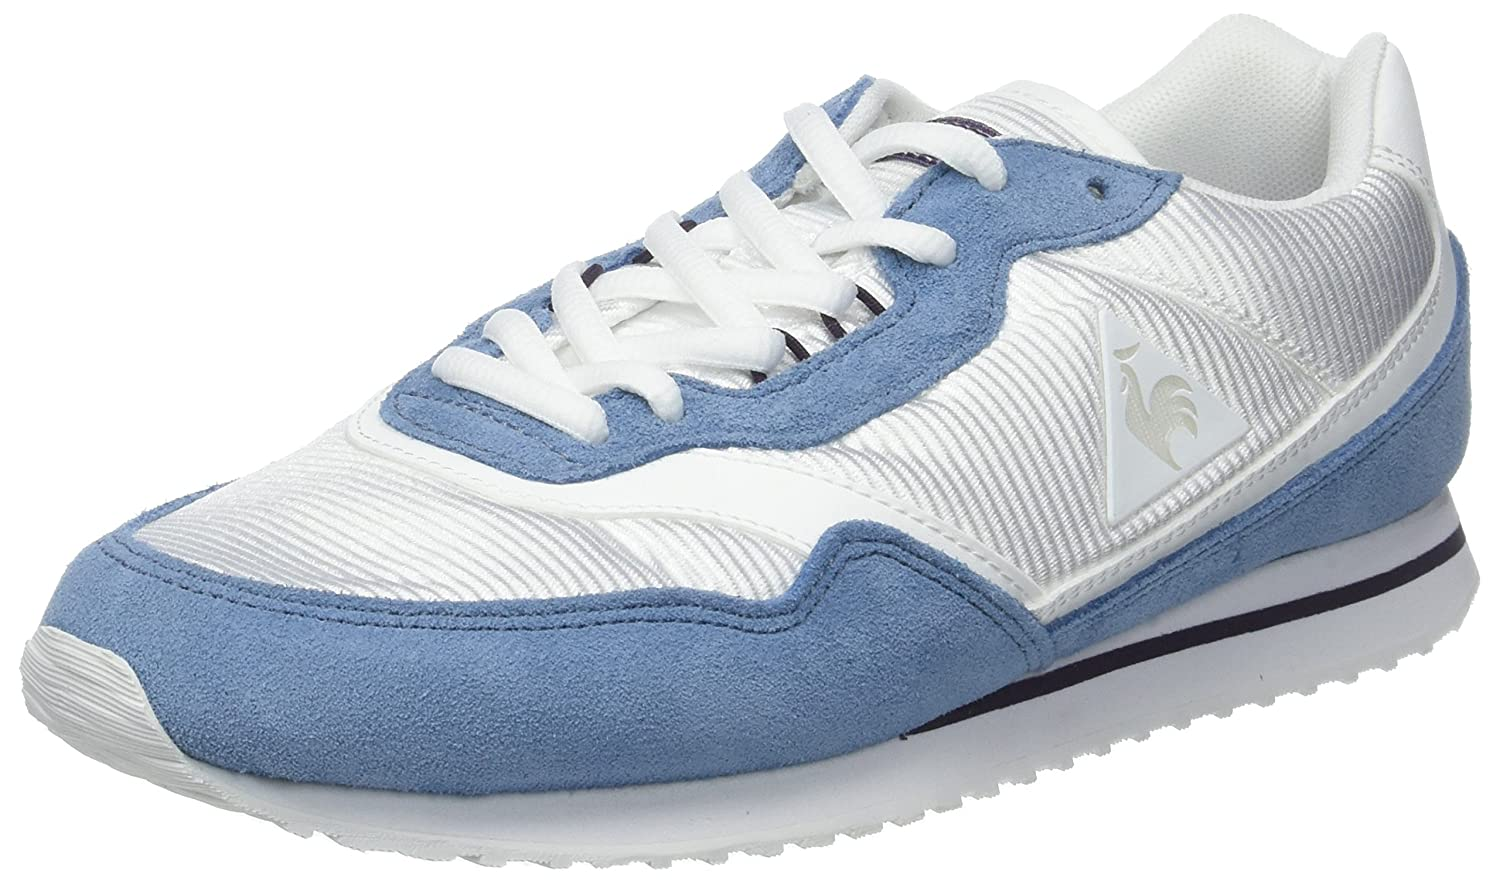 TALLA 40 EU. Le Coq Sportif Louise Sport Optical White/Blue Shadow, Zapatillas para Mujer